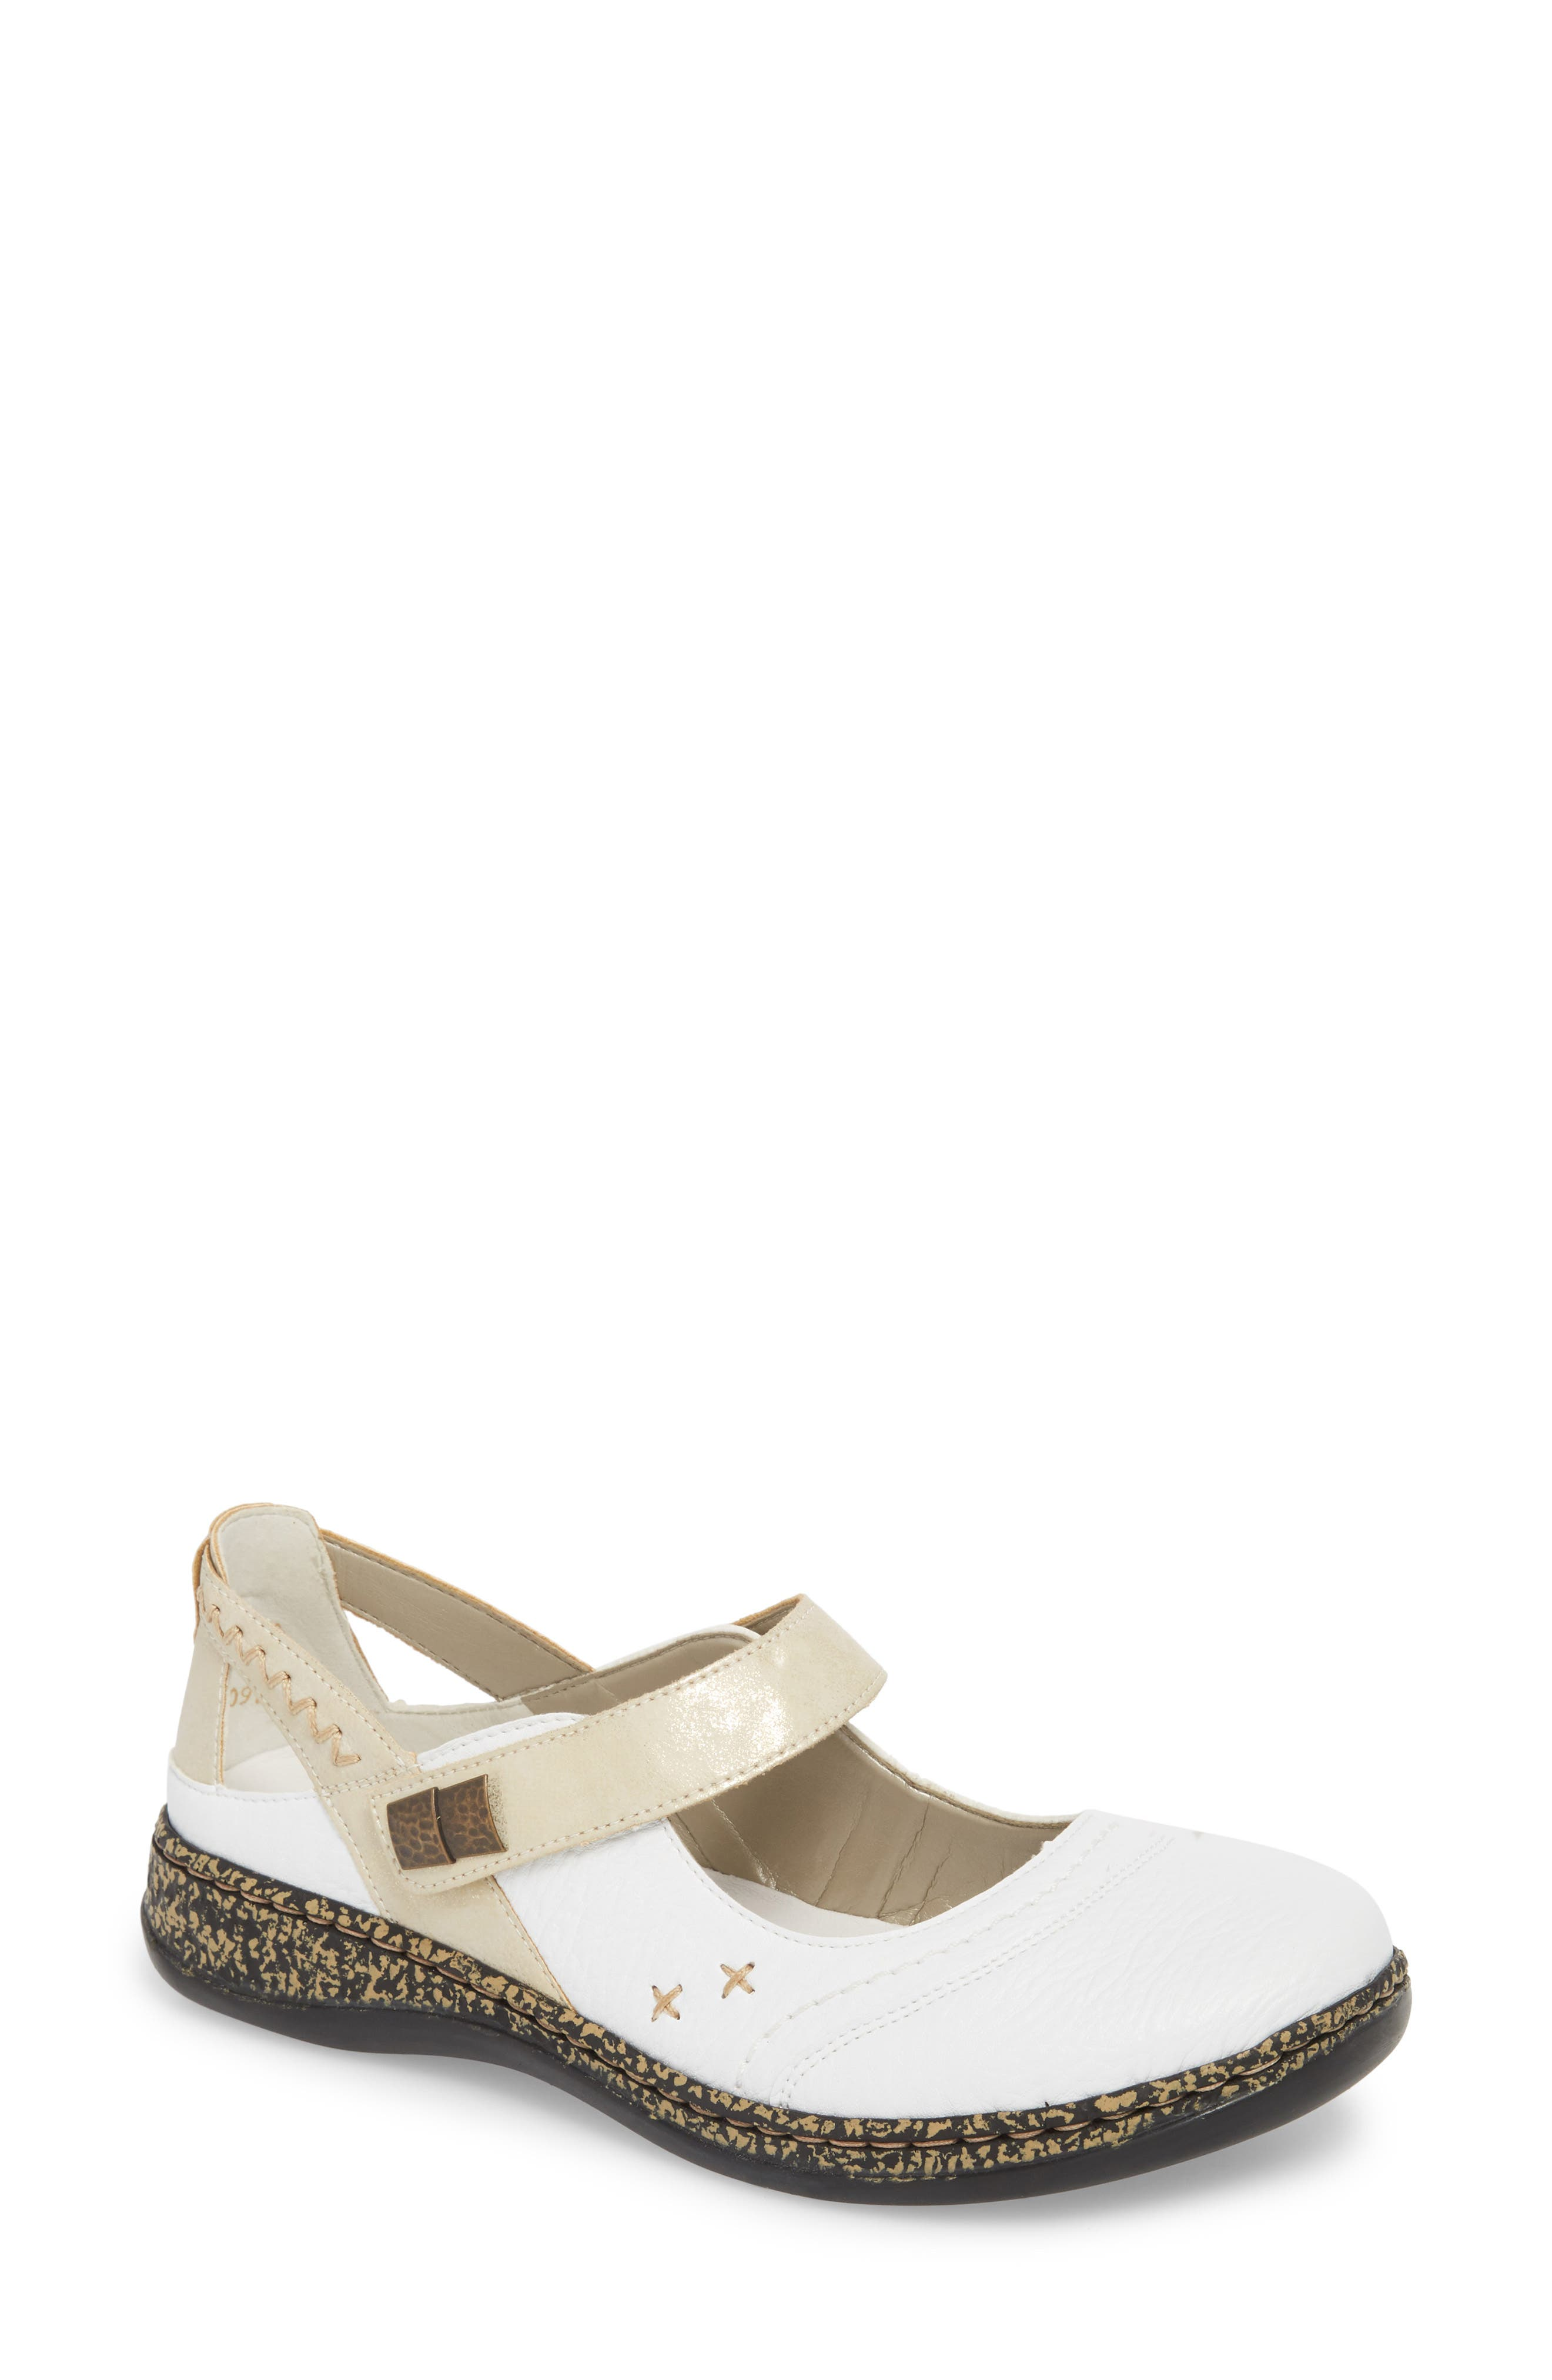 Daisy 78 Mary Jane Flat,                             Main thumbnail 1, color,                             WHITE/ GOLD SYNTHETIC LEATHER